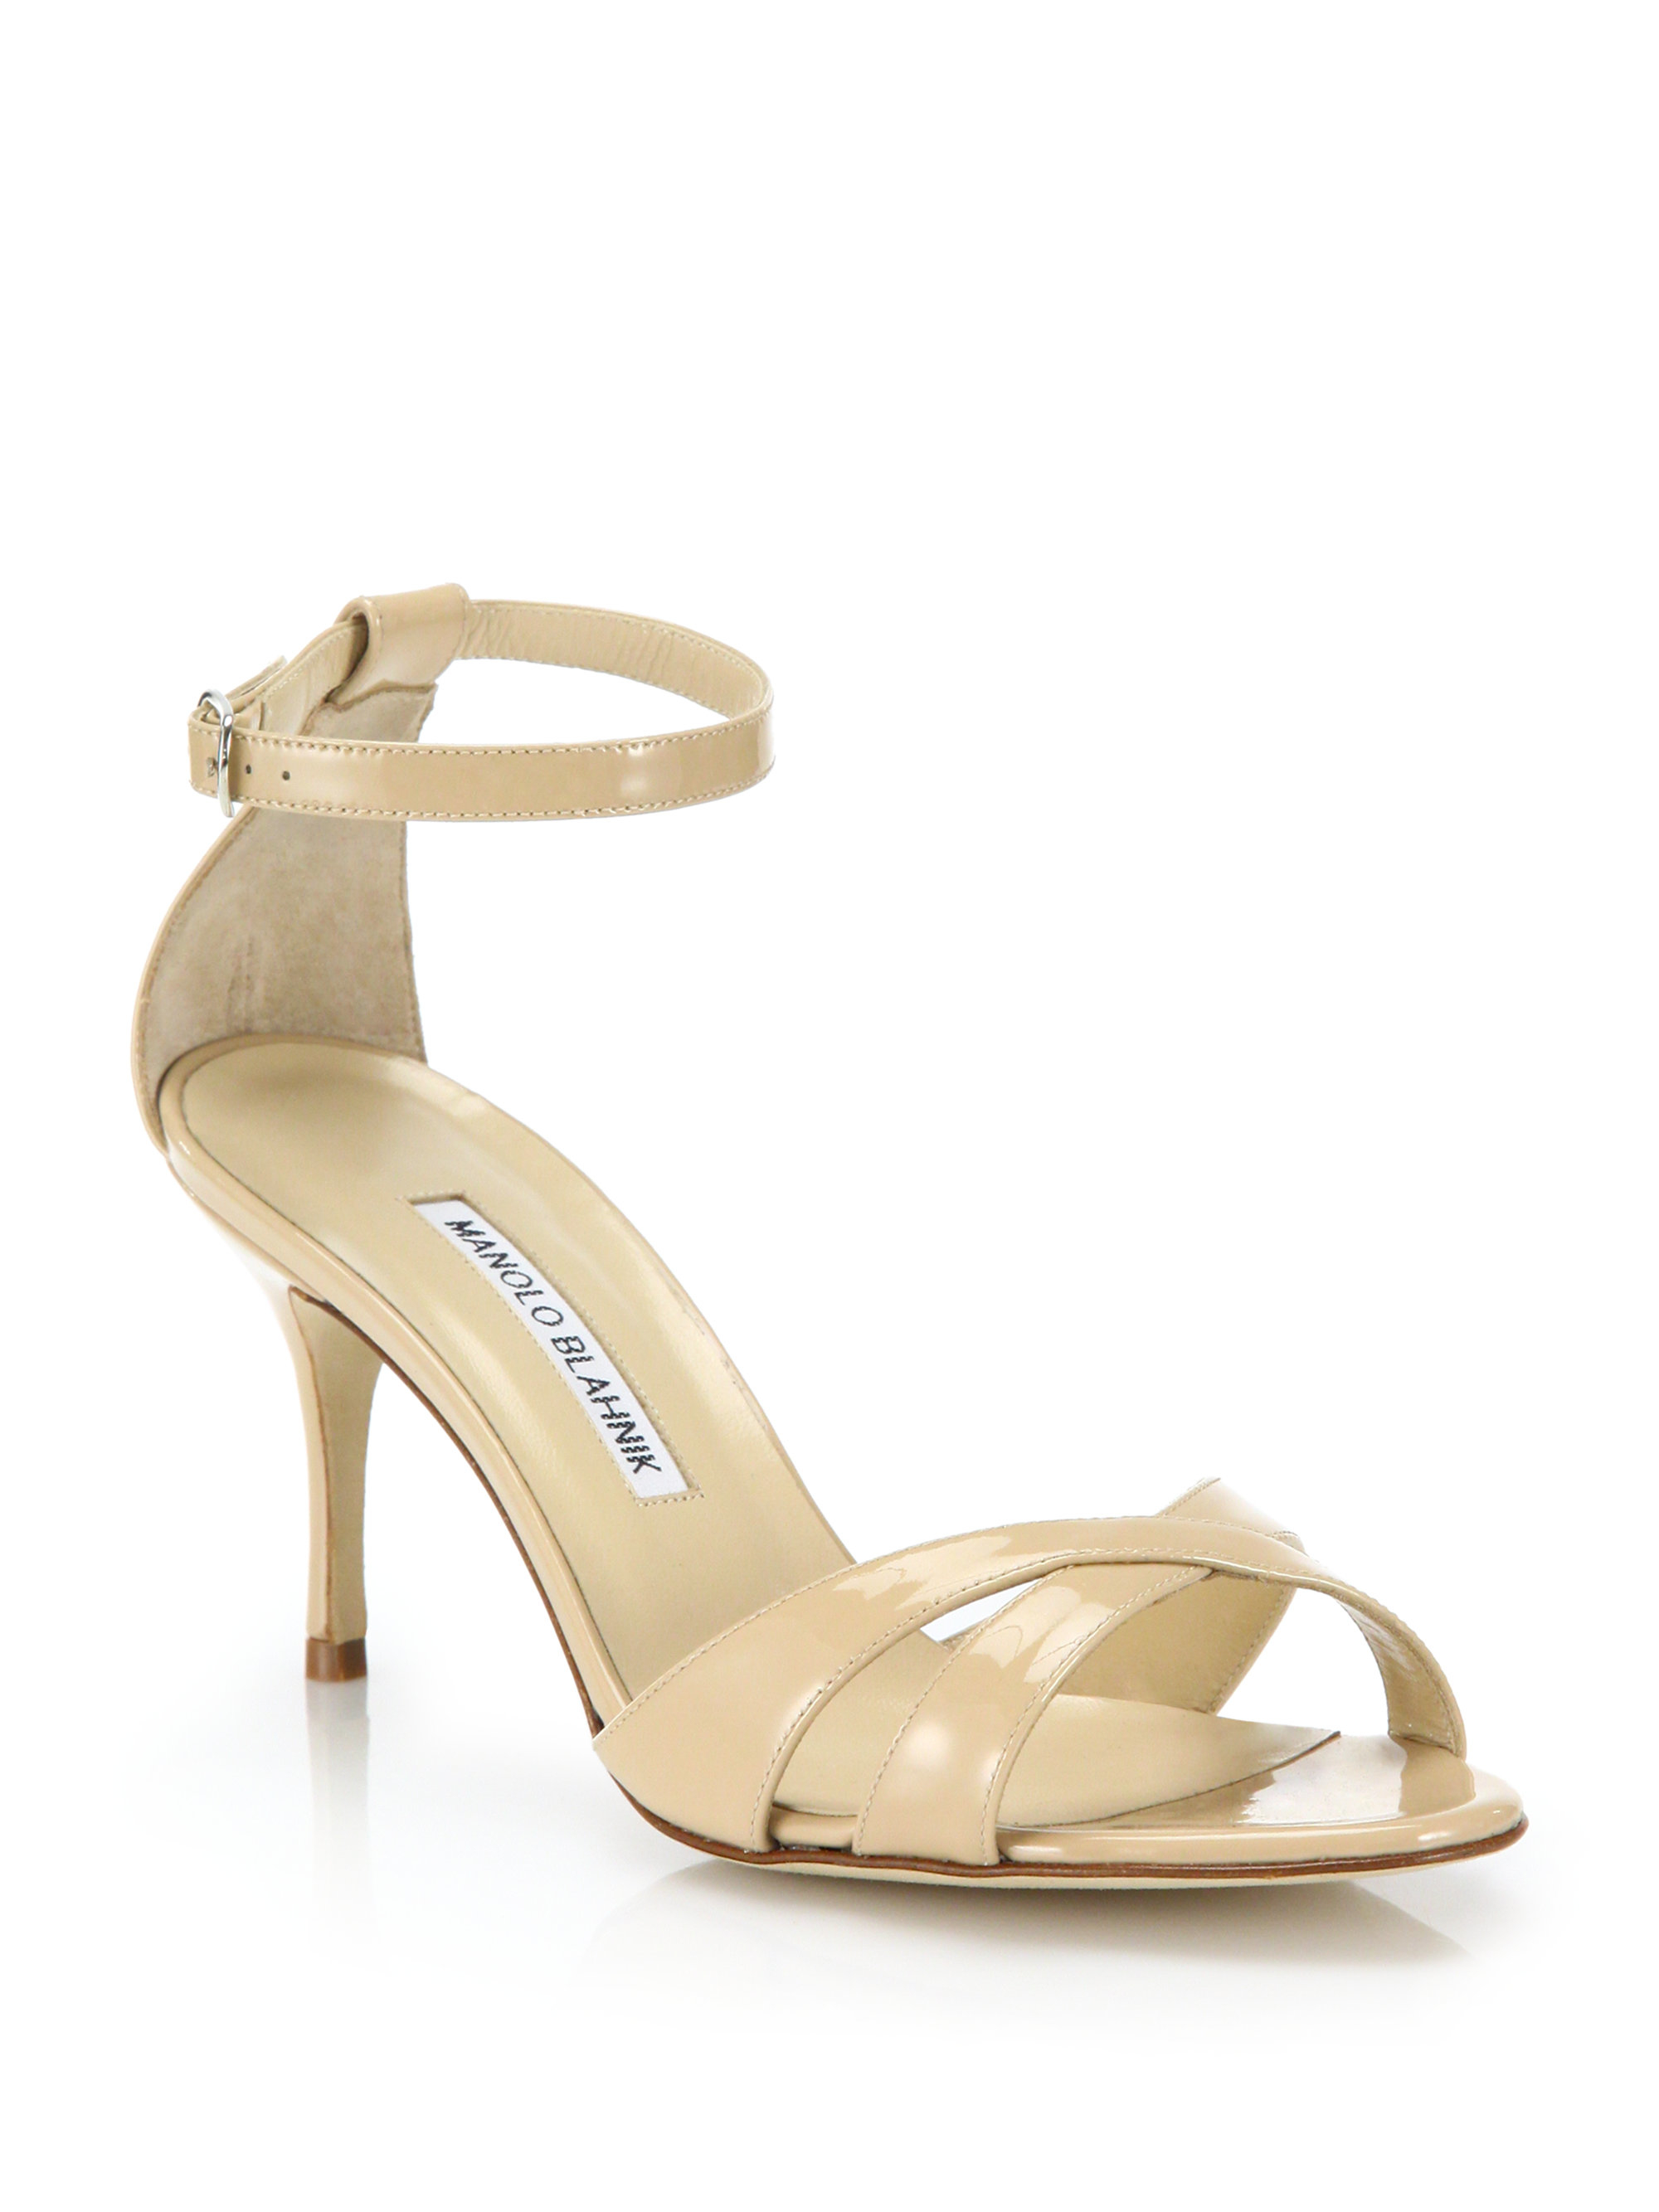 a34cfe28643 Lyst - Manolo Blahnik Patent Leather Mid-heel Crisscross Sandals in ...